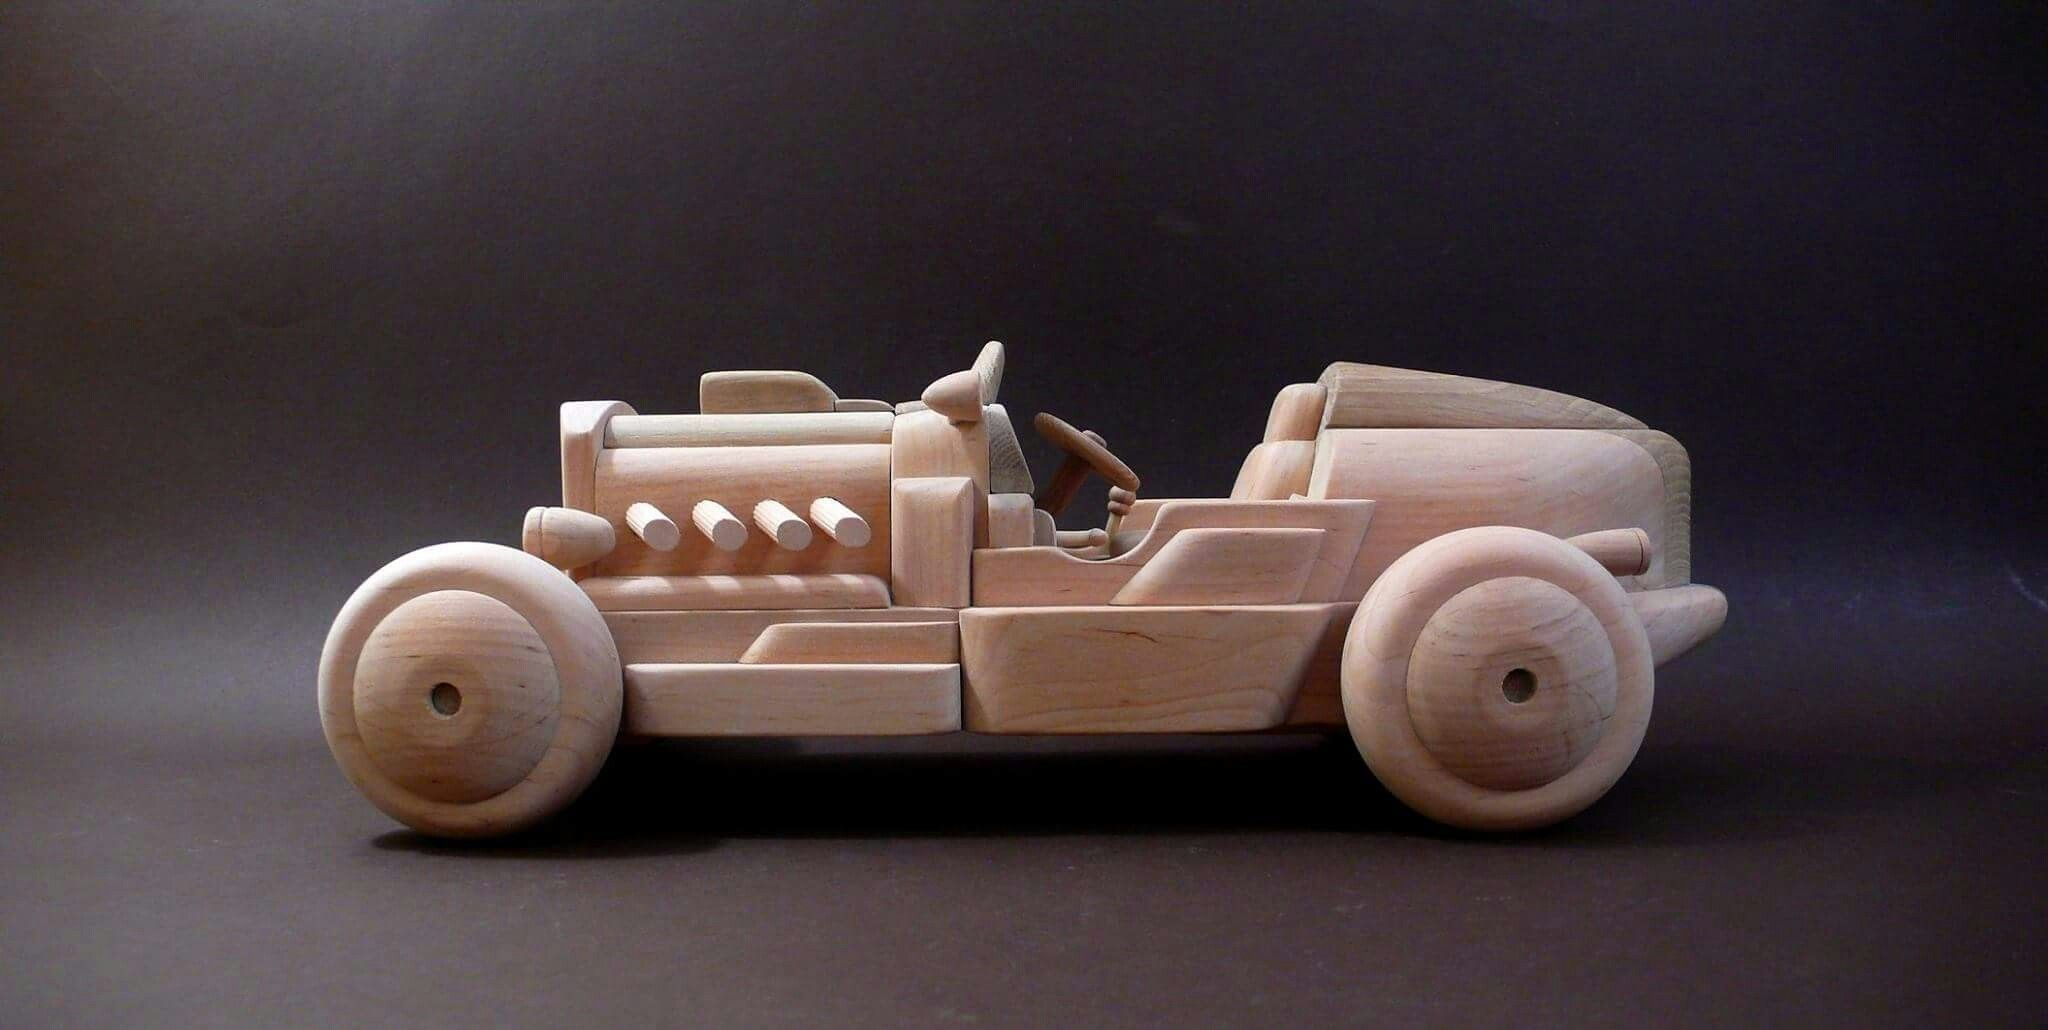 Wooden toys images  Wooden toys Yura Woodengalaxy  Wooden toys Yura Woodengalaxy